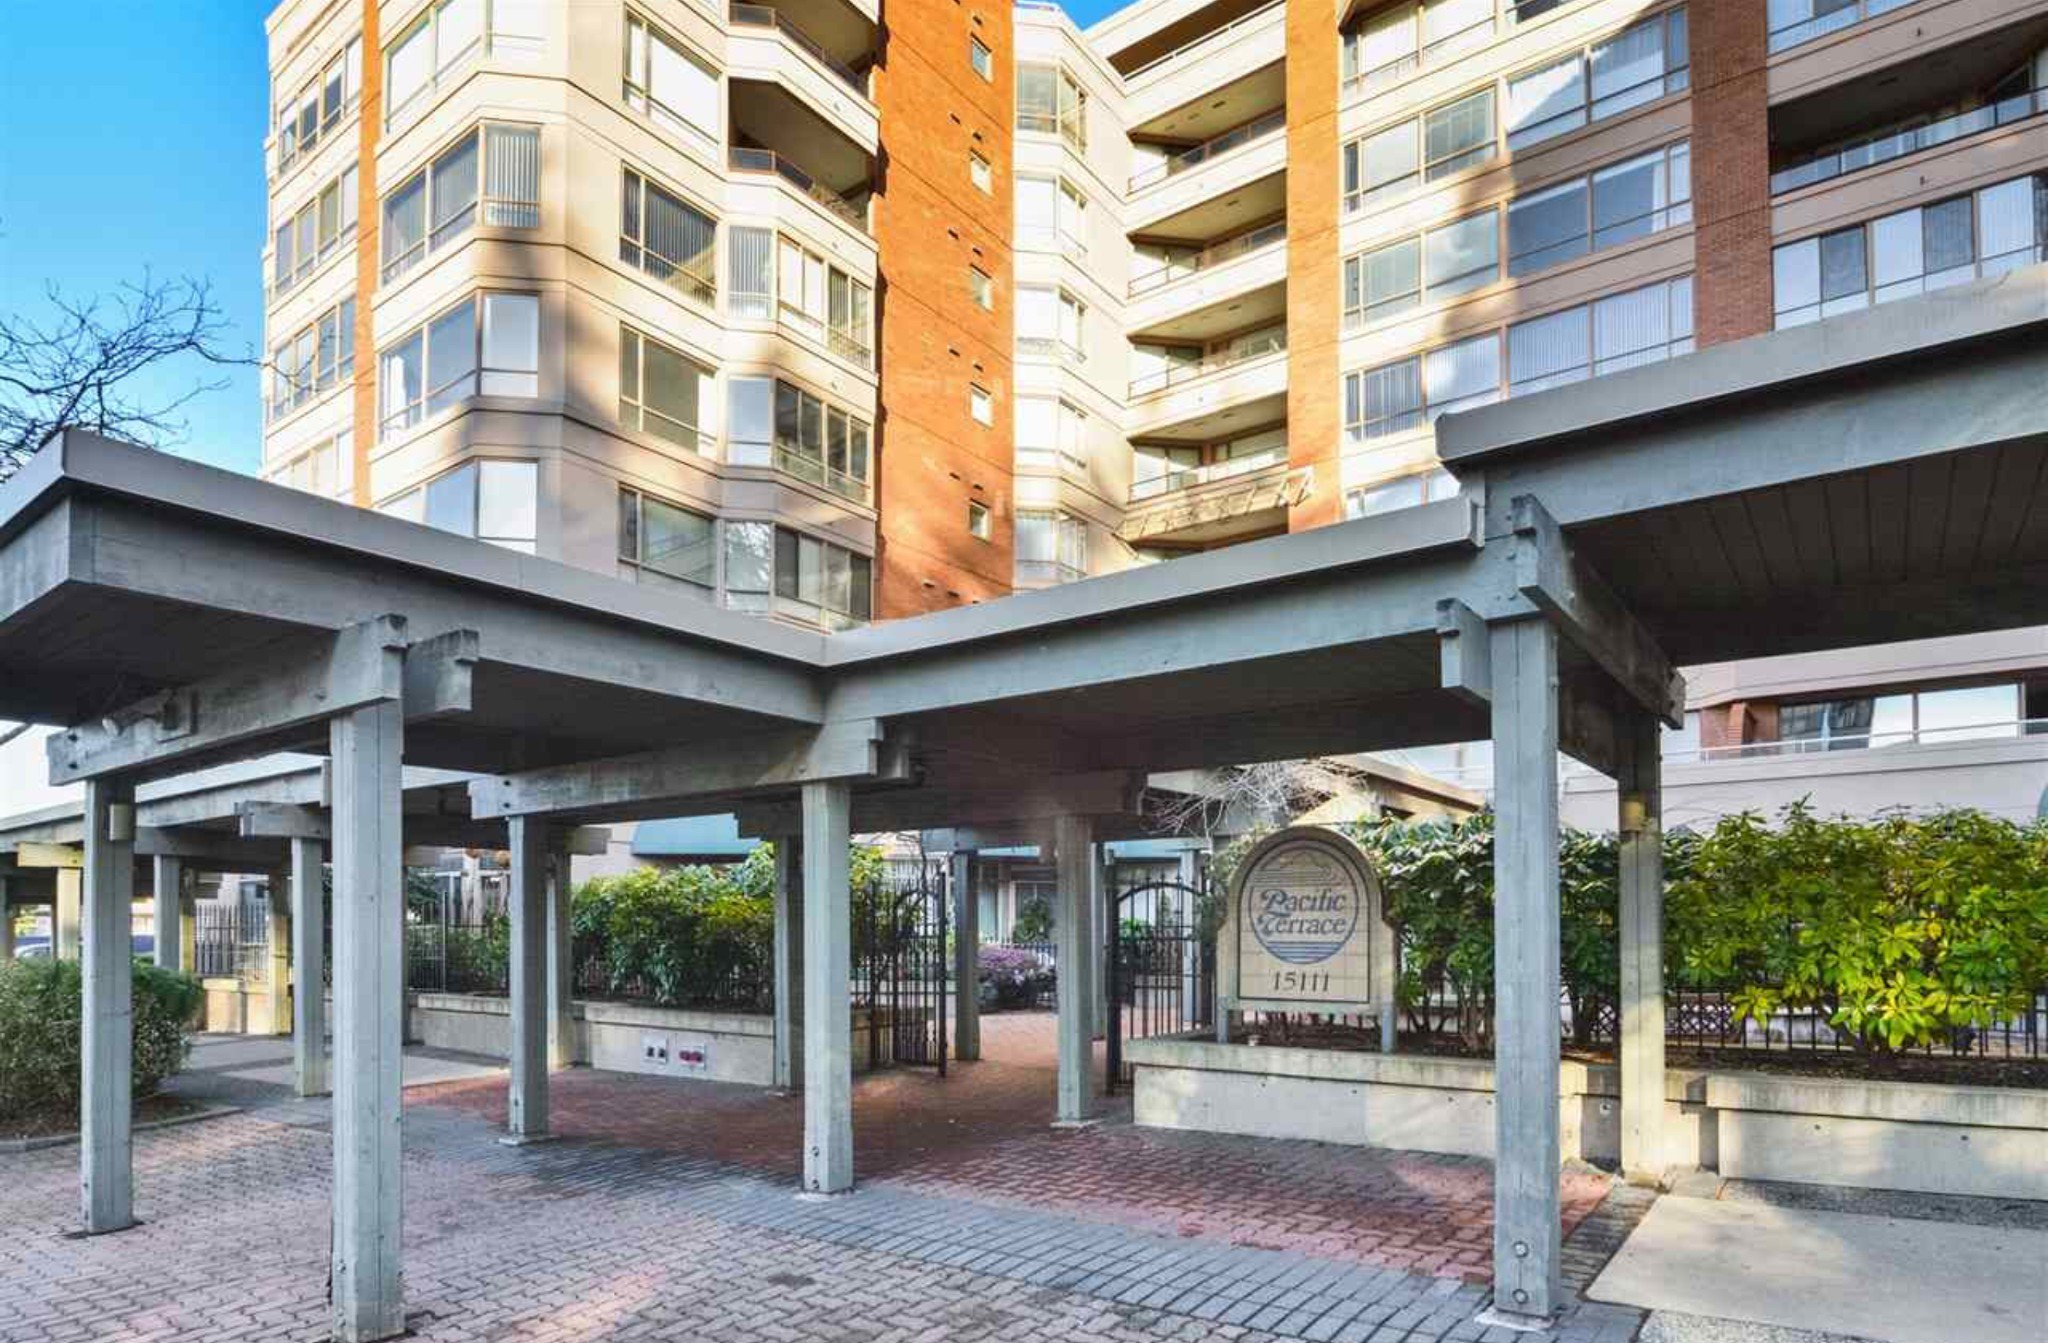 Photo 3: Photos: 405, 15111 Russell Avenue: White Rock Condo for sale (South Surrey White Rock)  : MLS®# R2133728